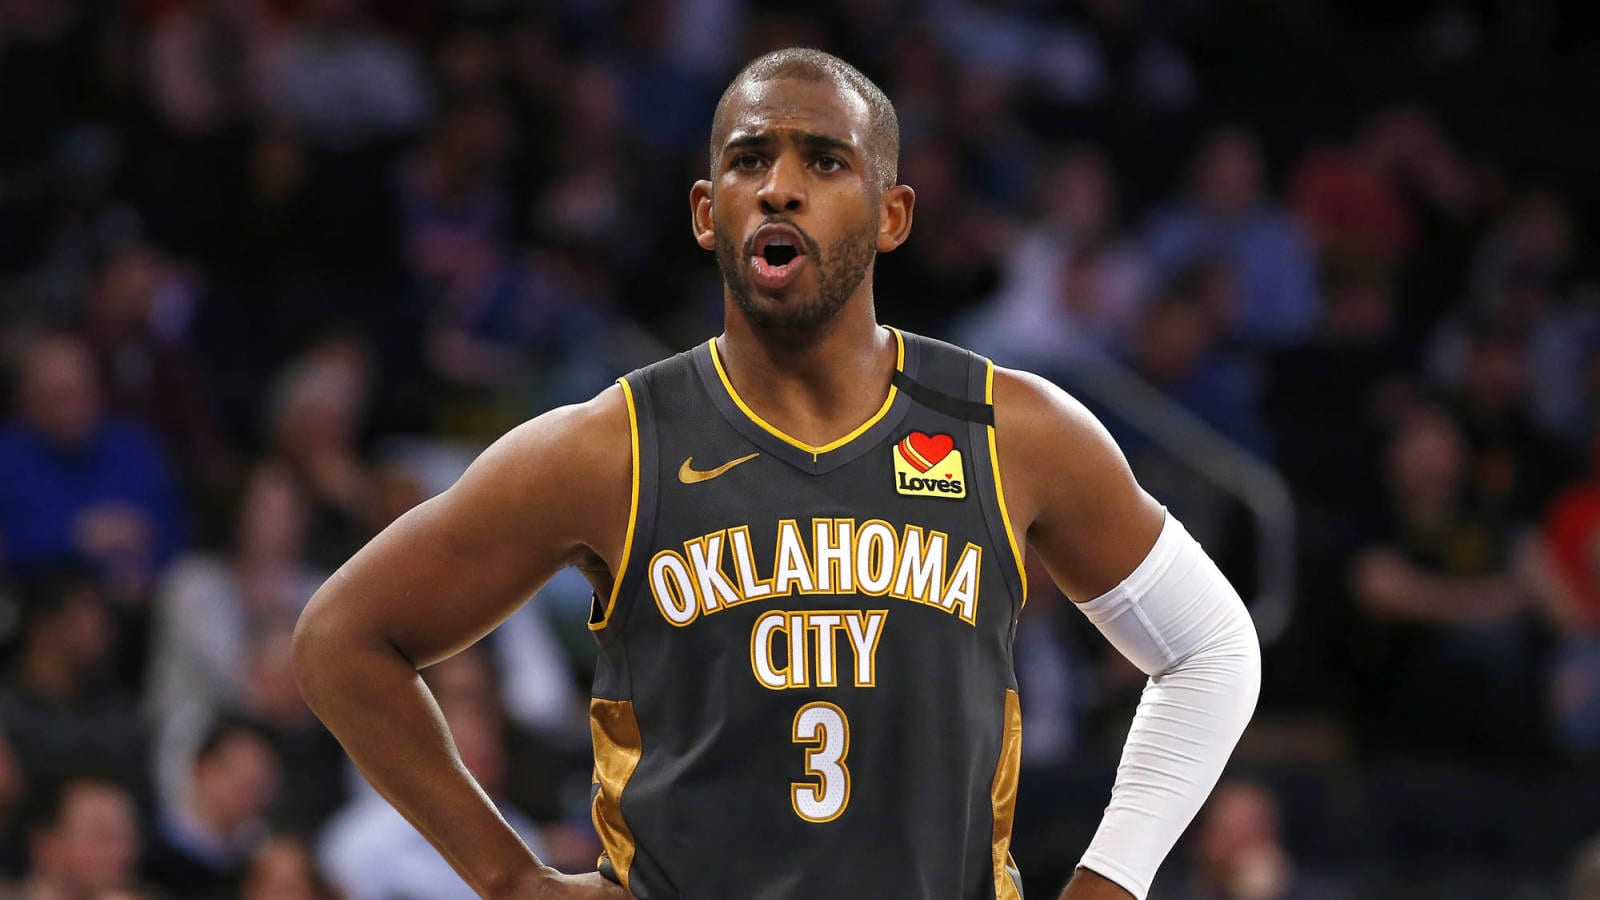 Chris Paul Producing HBO Documentary 'The Day Sports Stood Still'